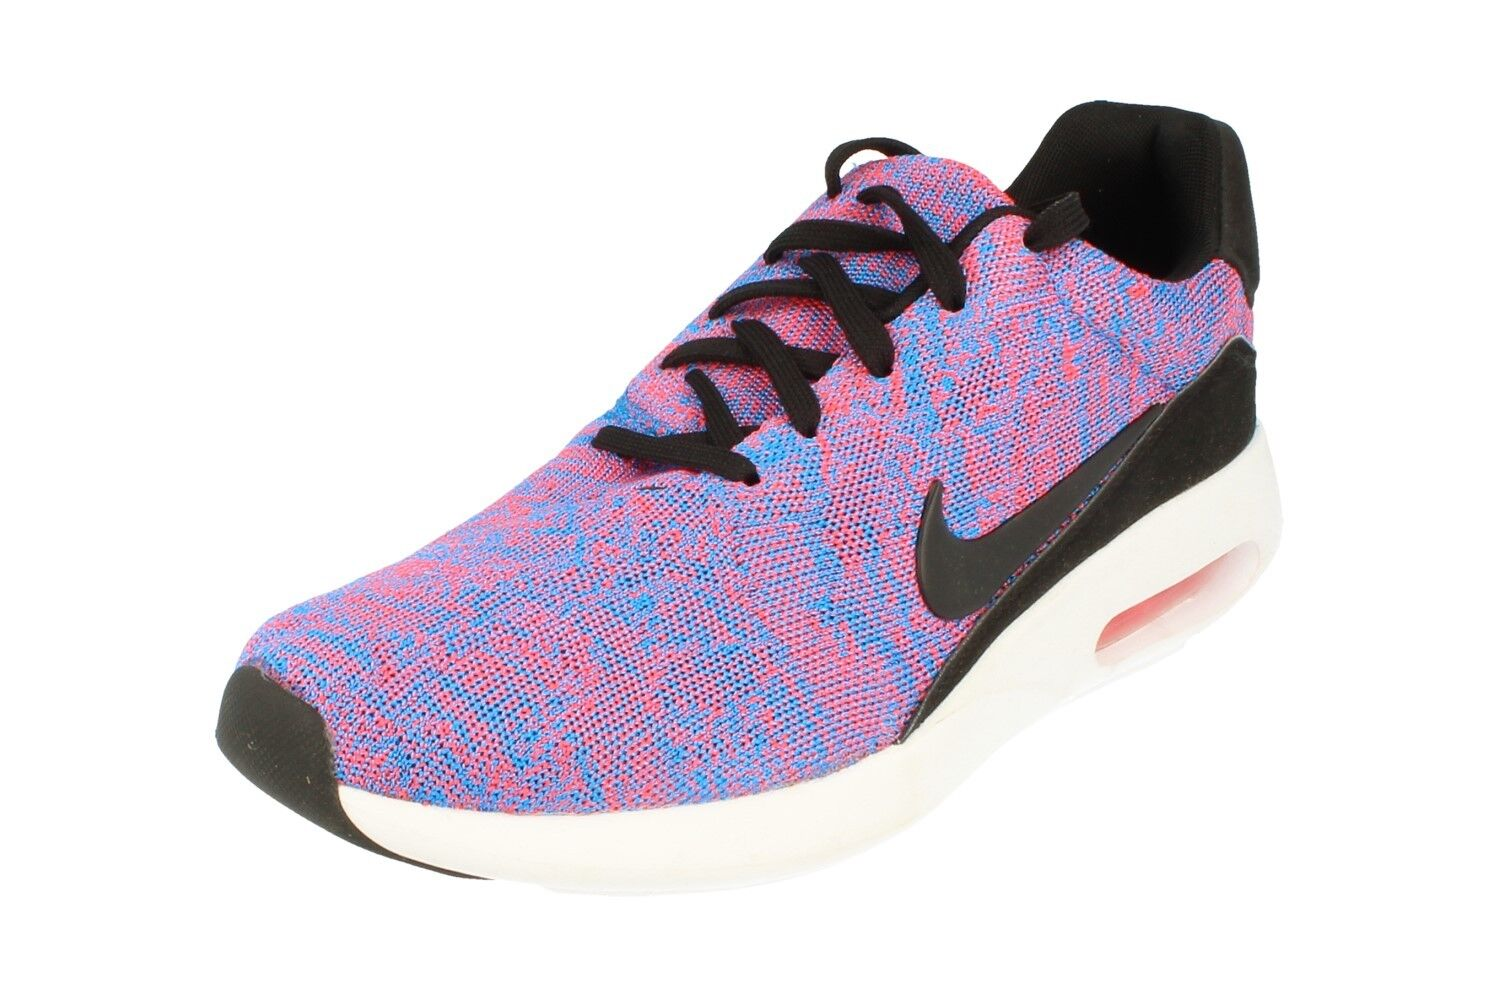 Nike Air Max Modern Flyknit Flyknit Flyknit Hommes Running Trainers 876066 401 Baskets Clearance 34744d